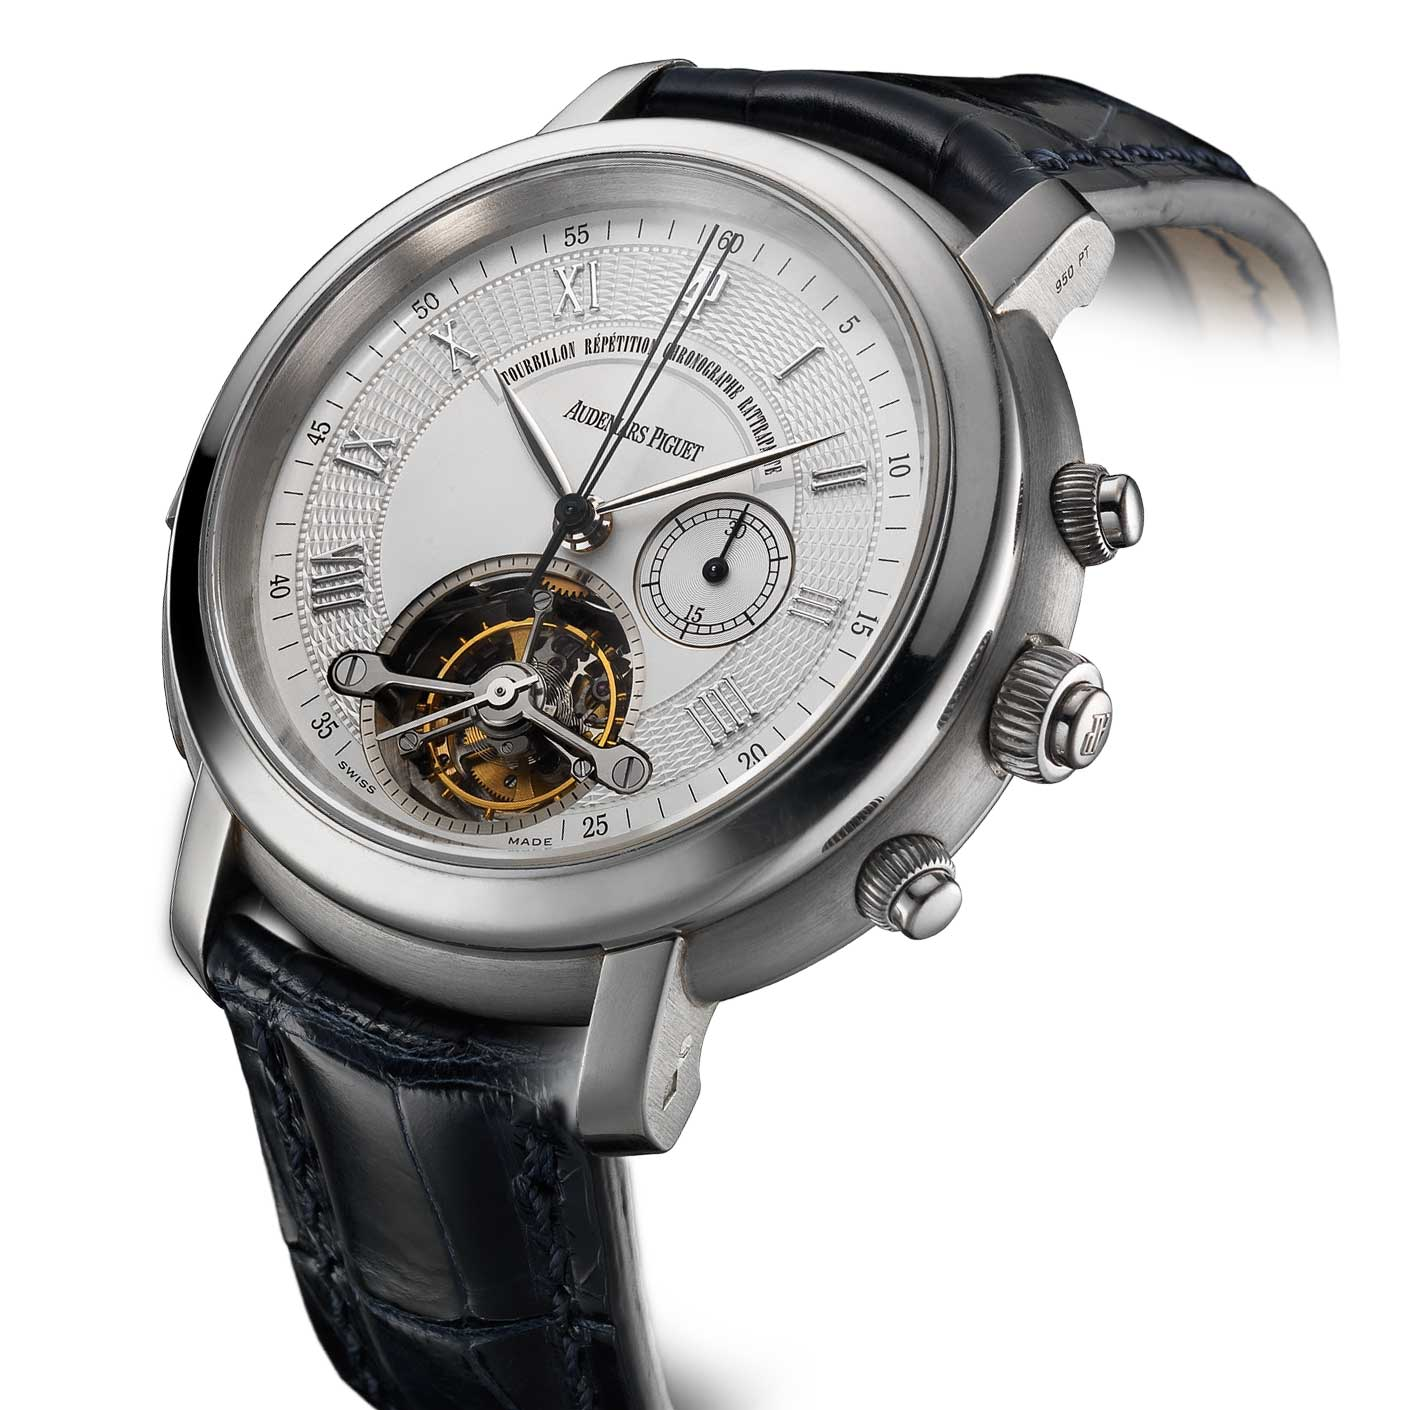 Audemars Piguet combined the tourbillon and chrongraph mechanism for the first time in 1999 with the Jules Audemars Tradition d'Excellence n°1; the watch seen here is from the Audemars Piguet Heritage Collection, Inv. 411